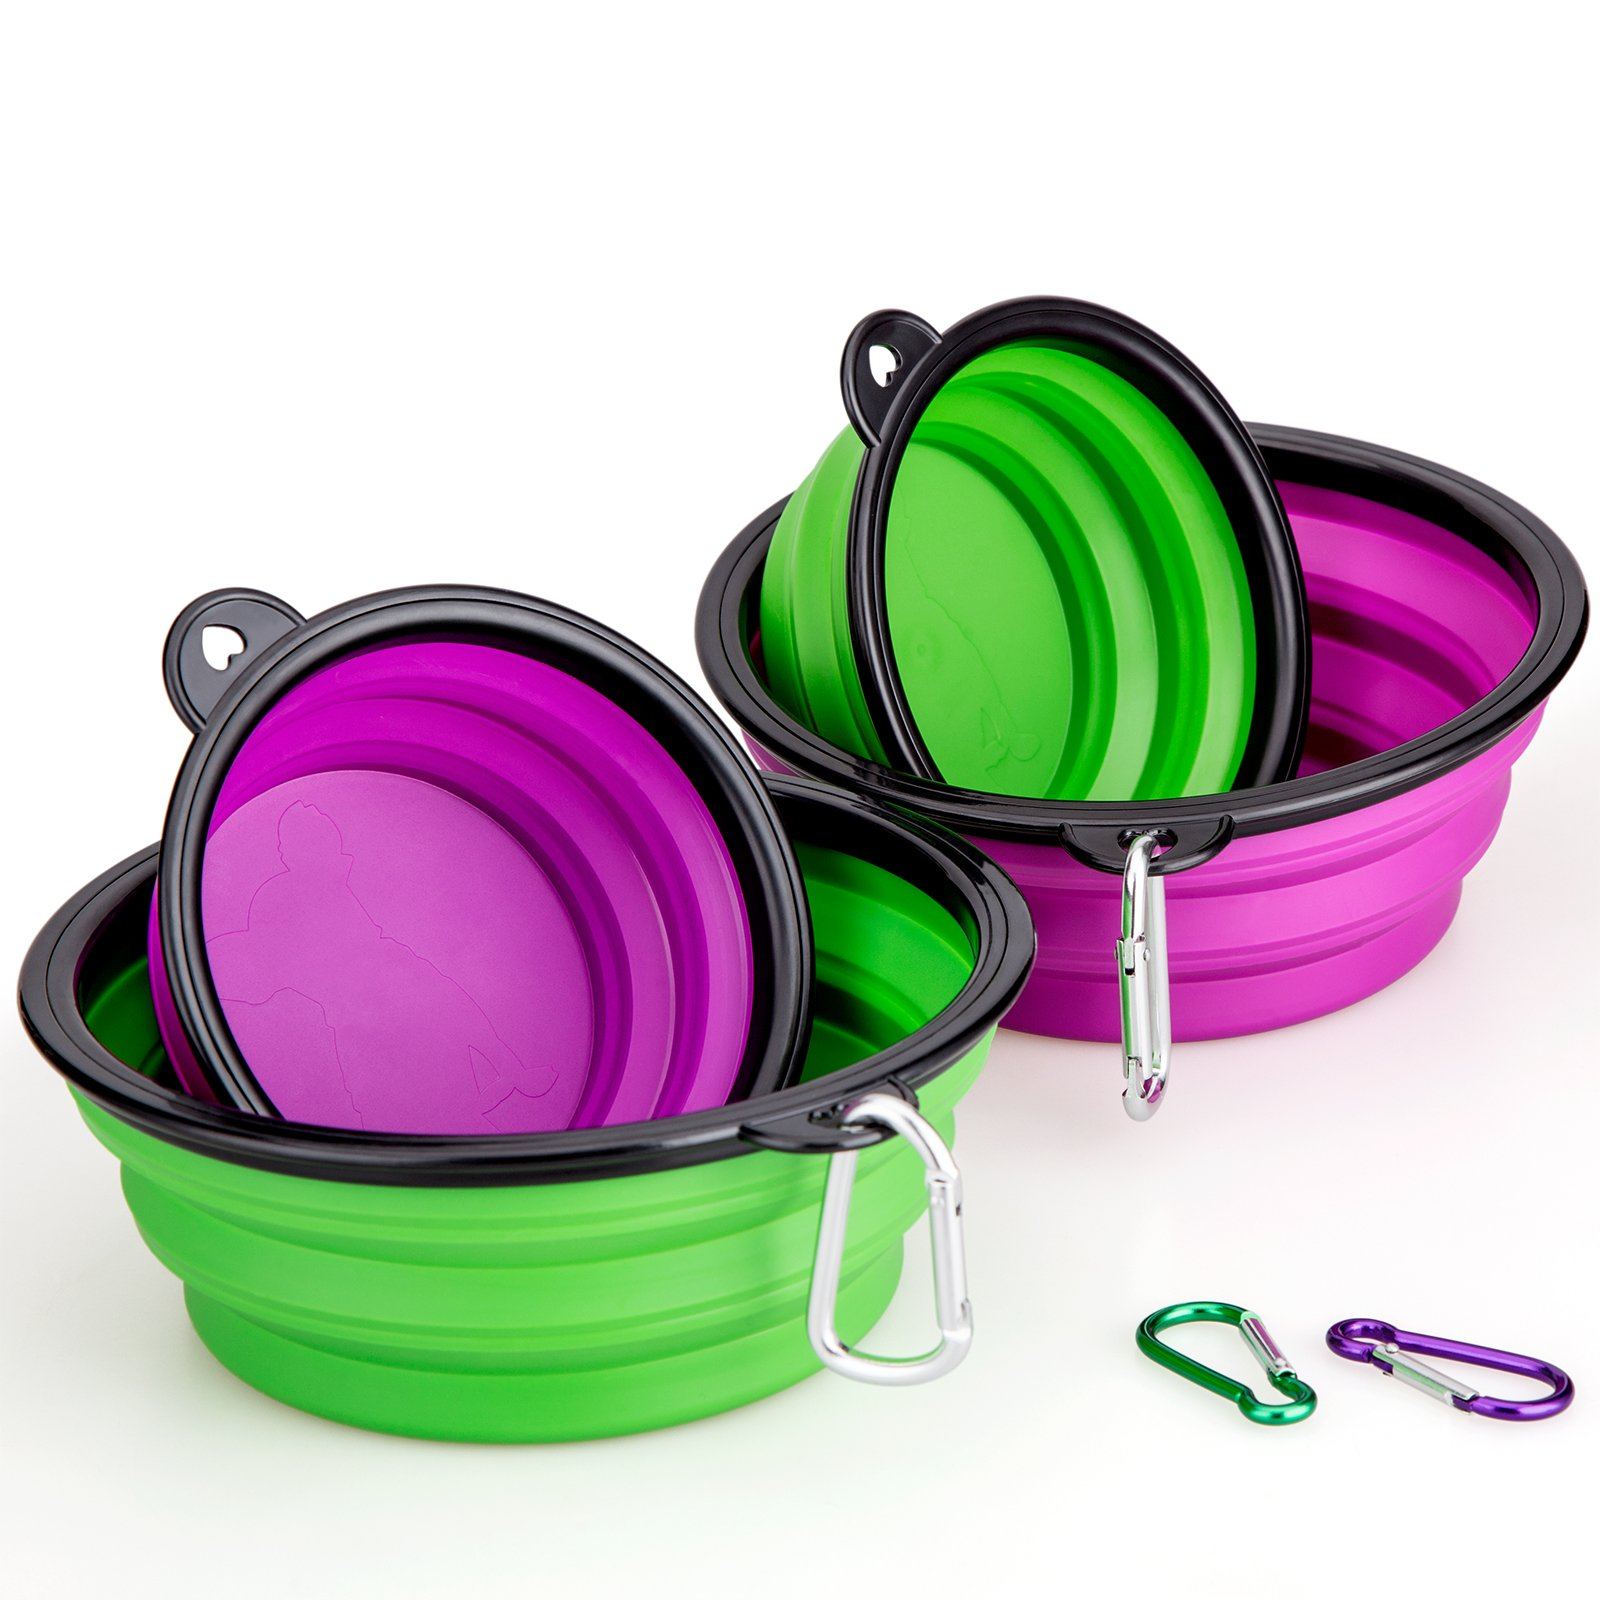 Collapsible Silicone Dog Bowl,IDEGG Food Grade Silicone,BPA Free Foldable Expandable Cup Dish for Pet Raised Dog/Cat Food Water Feeding Travel Bowl(Set of 4-Two Large Size+Two Small Size,Purple+Green)